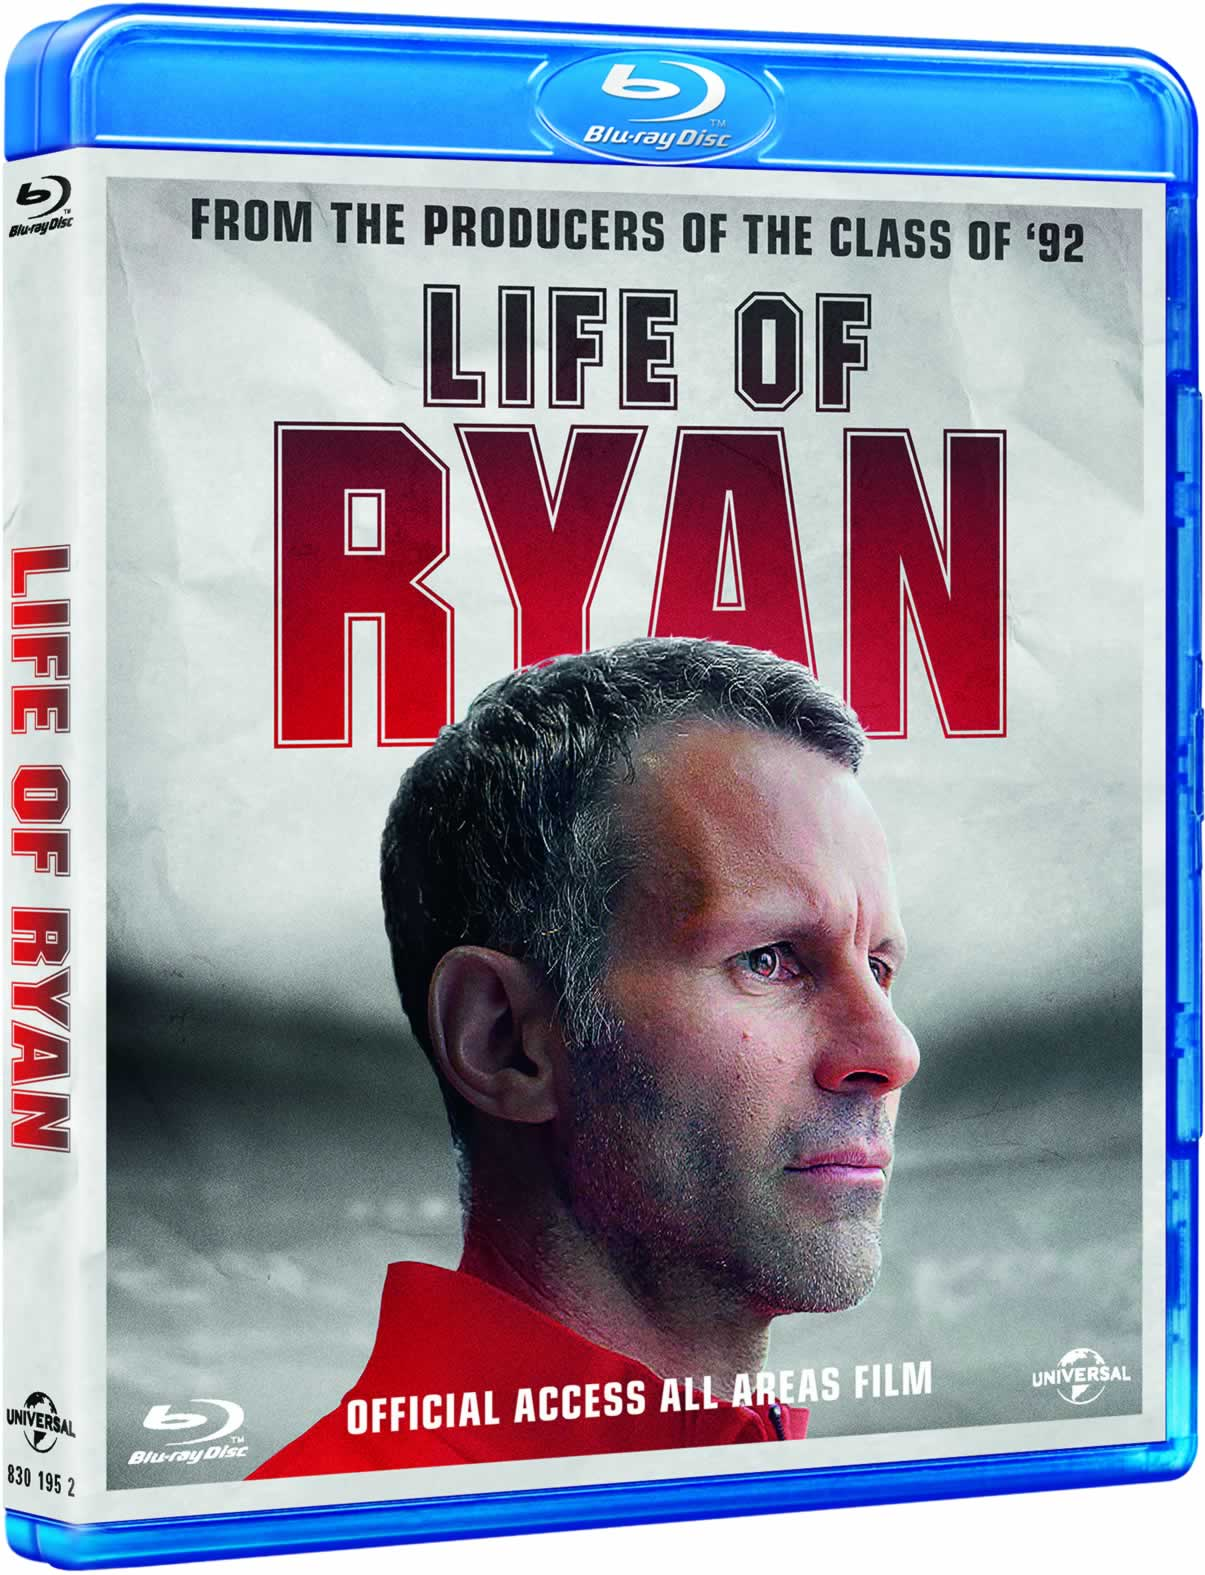 Life of Ryan released November 24th